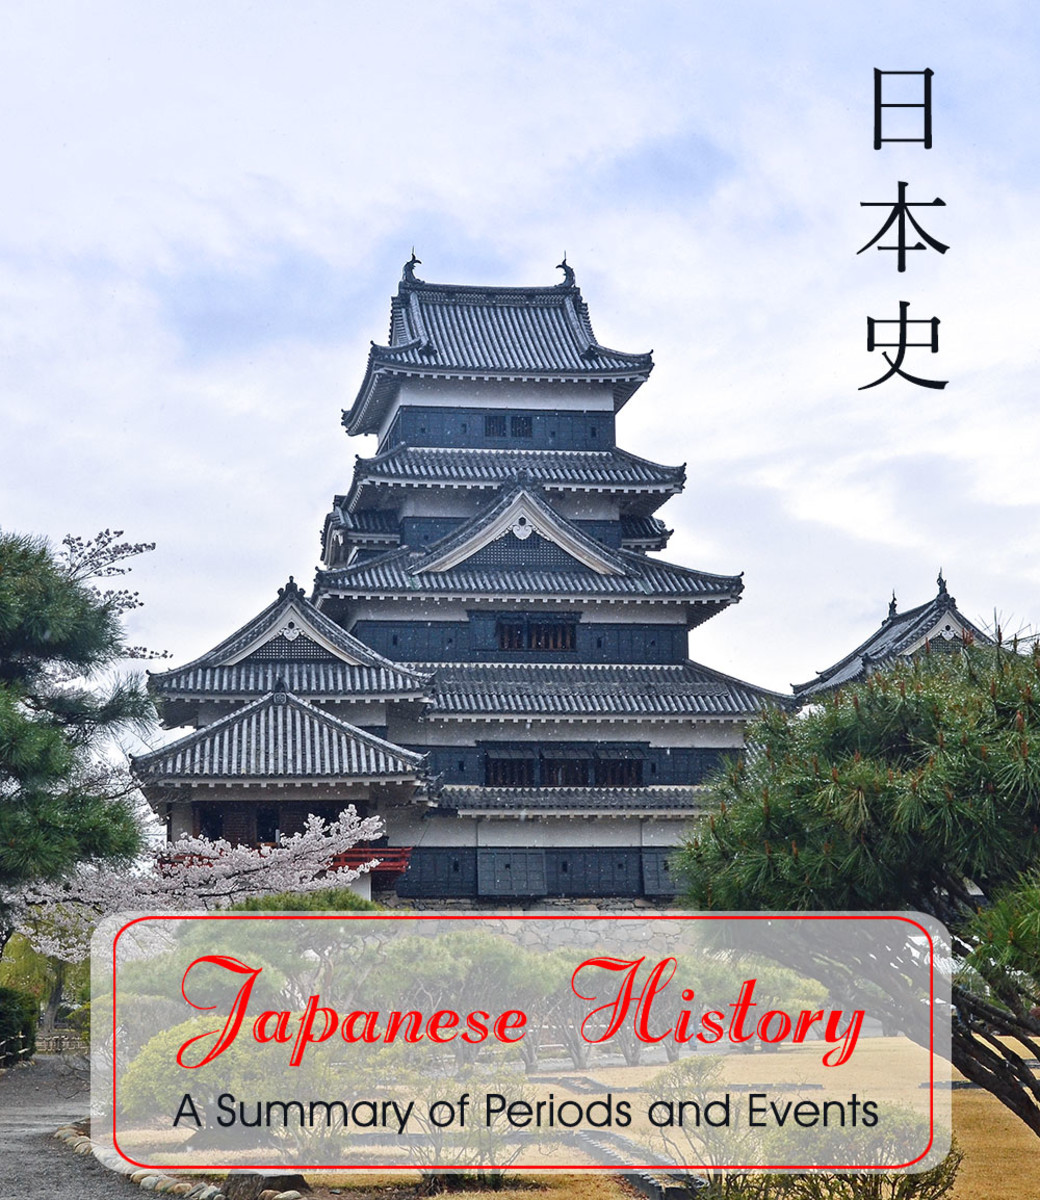 Curious about the roots of the unique Asian culture we know of today? Here's a timeline of the major periods of Japanese history.